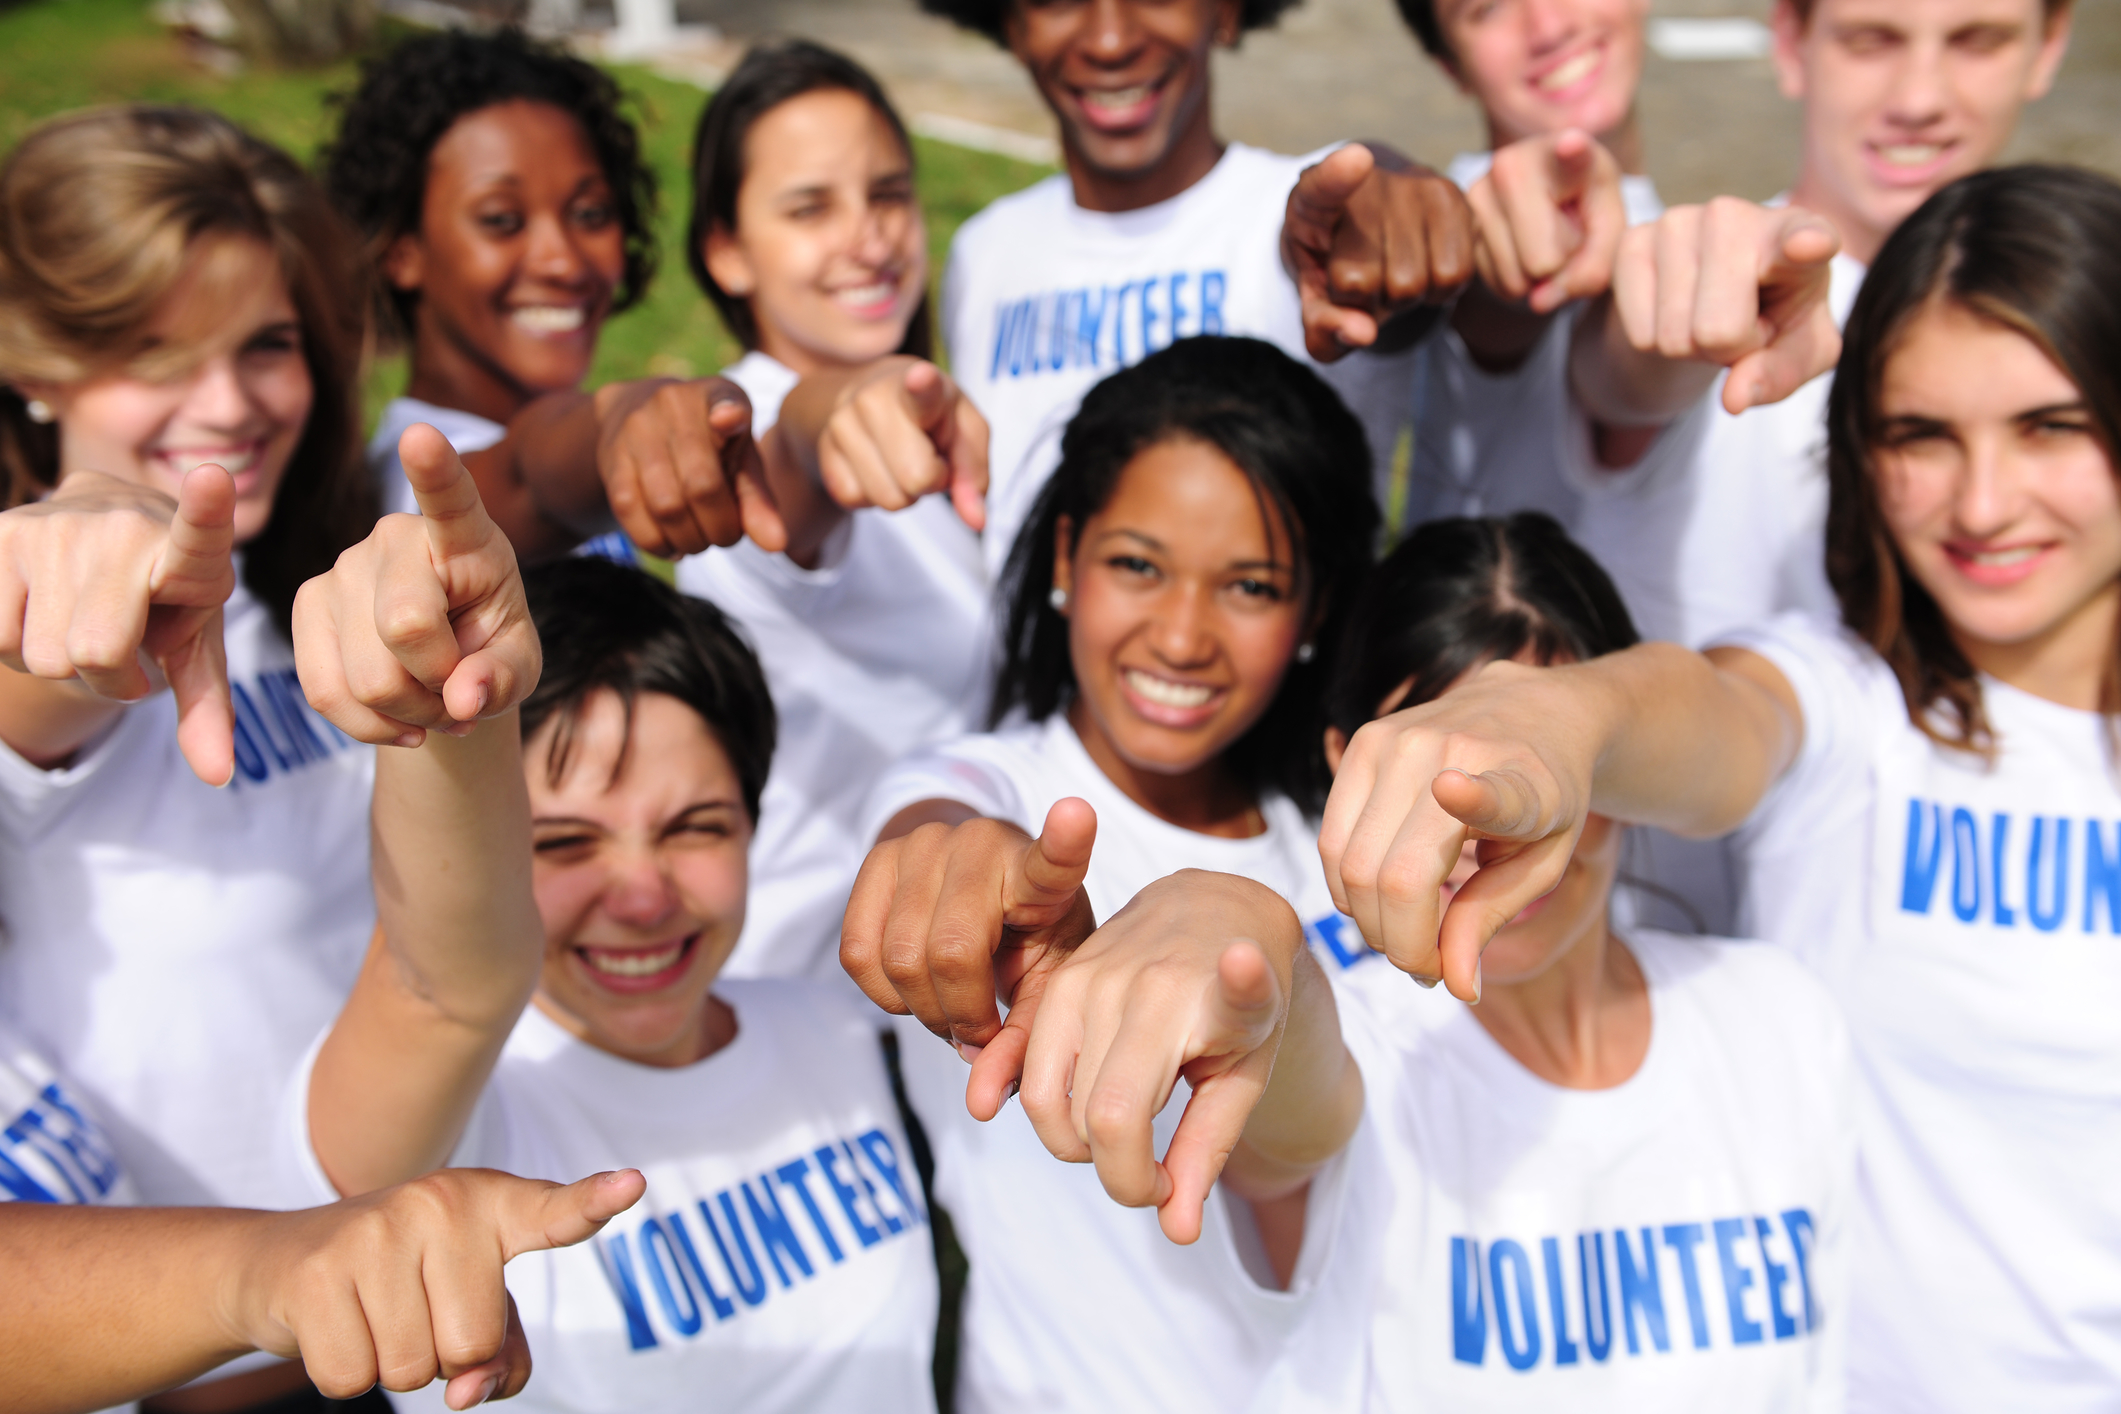 Building Capacity and Increasing Volunteer Support